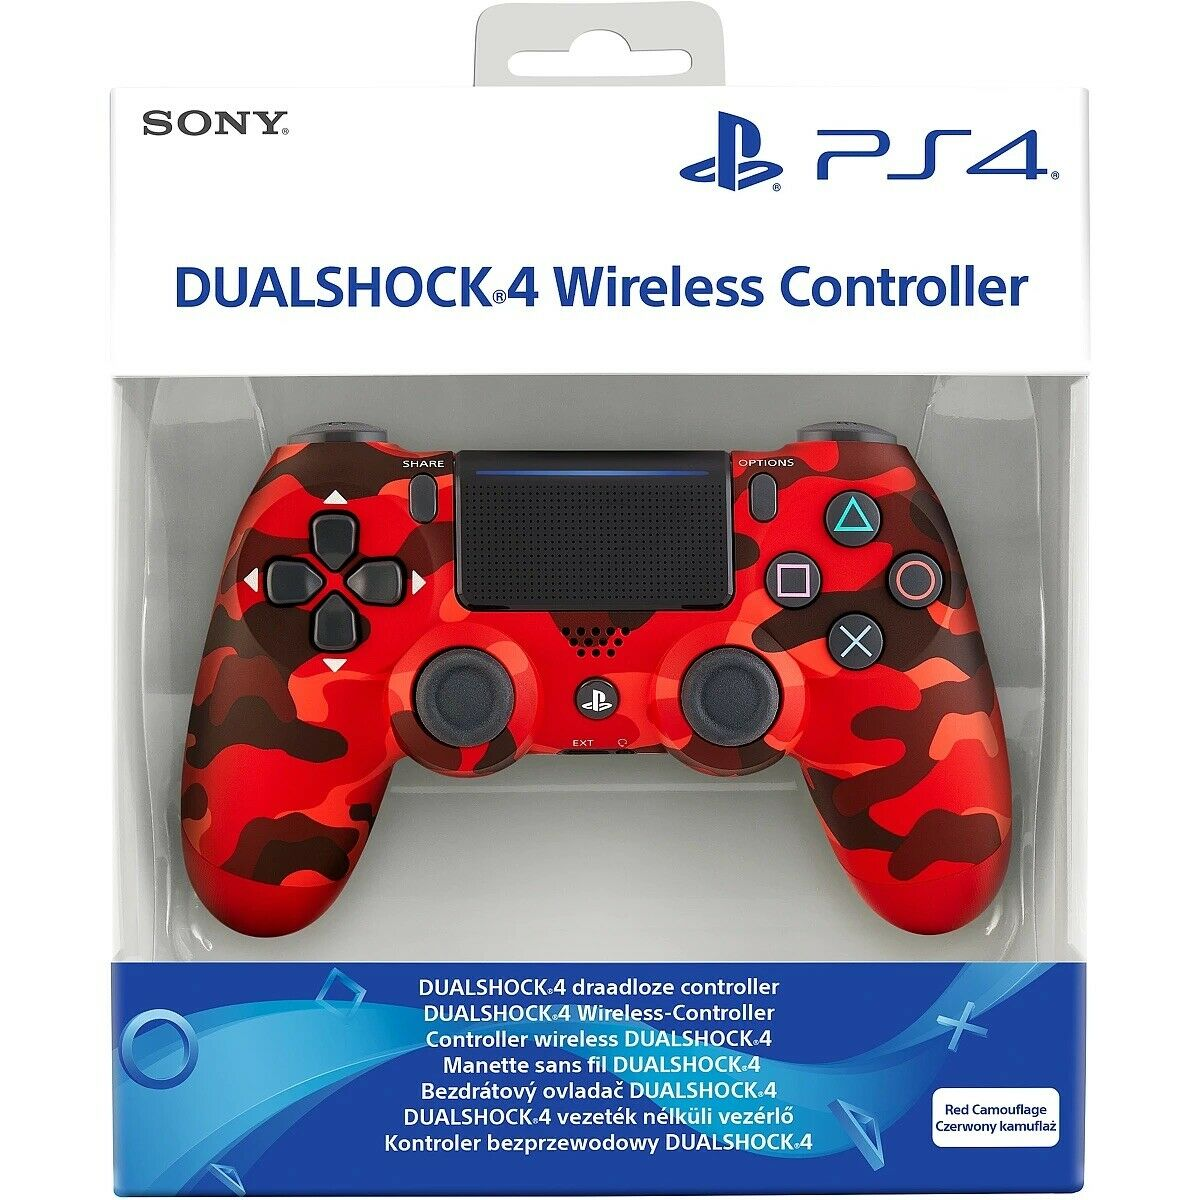 Sony PlayStation Limited Red Camo Camouflage DualShock 4 V2 PS4 UK Controller CE